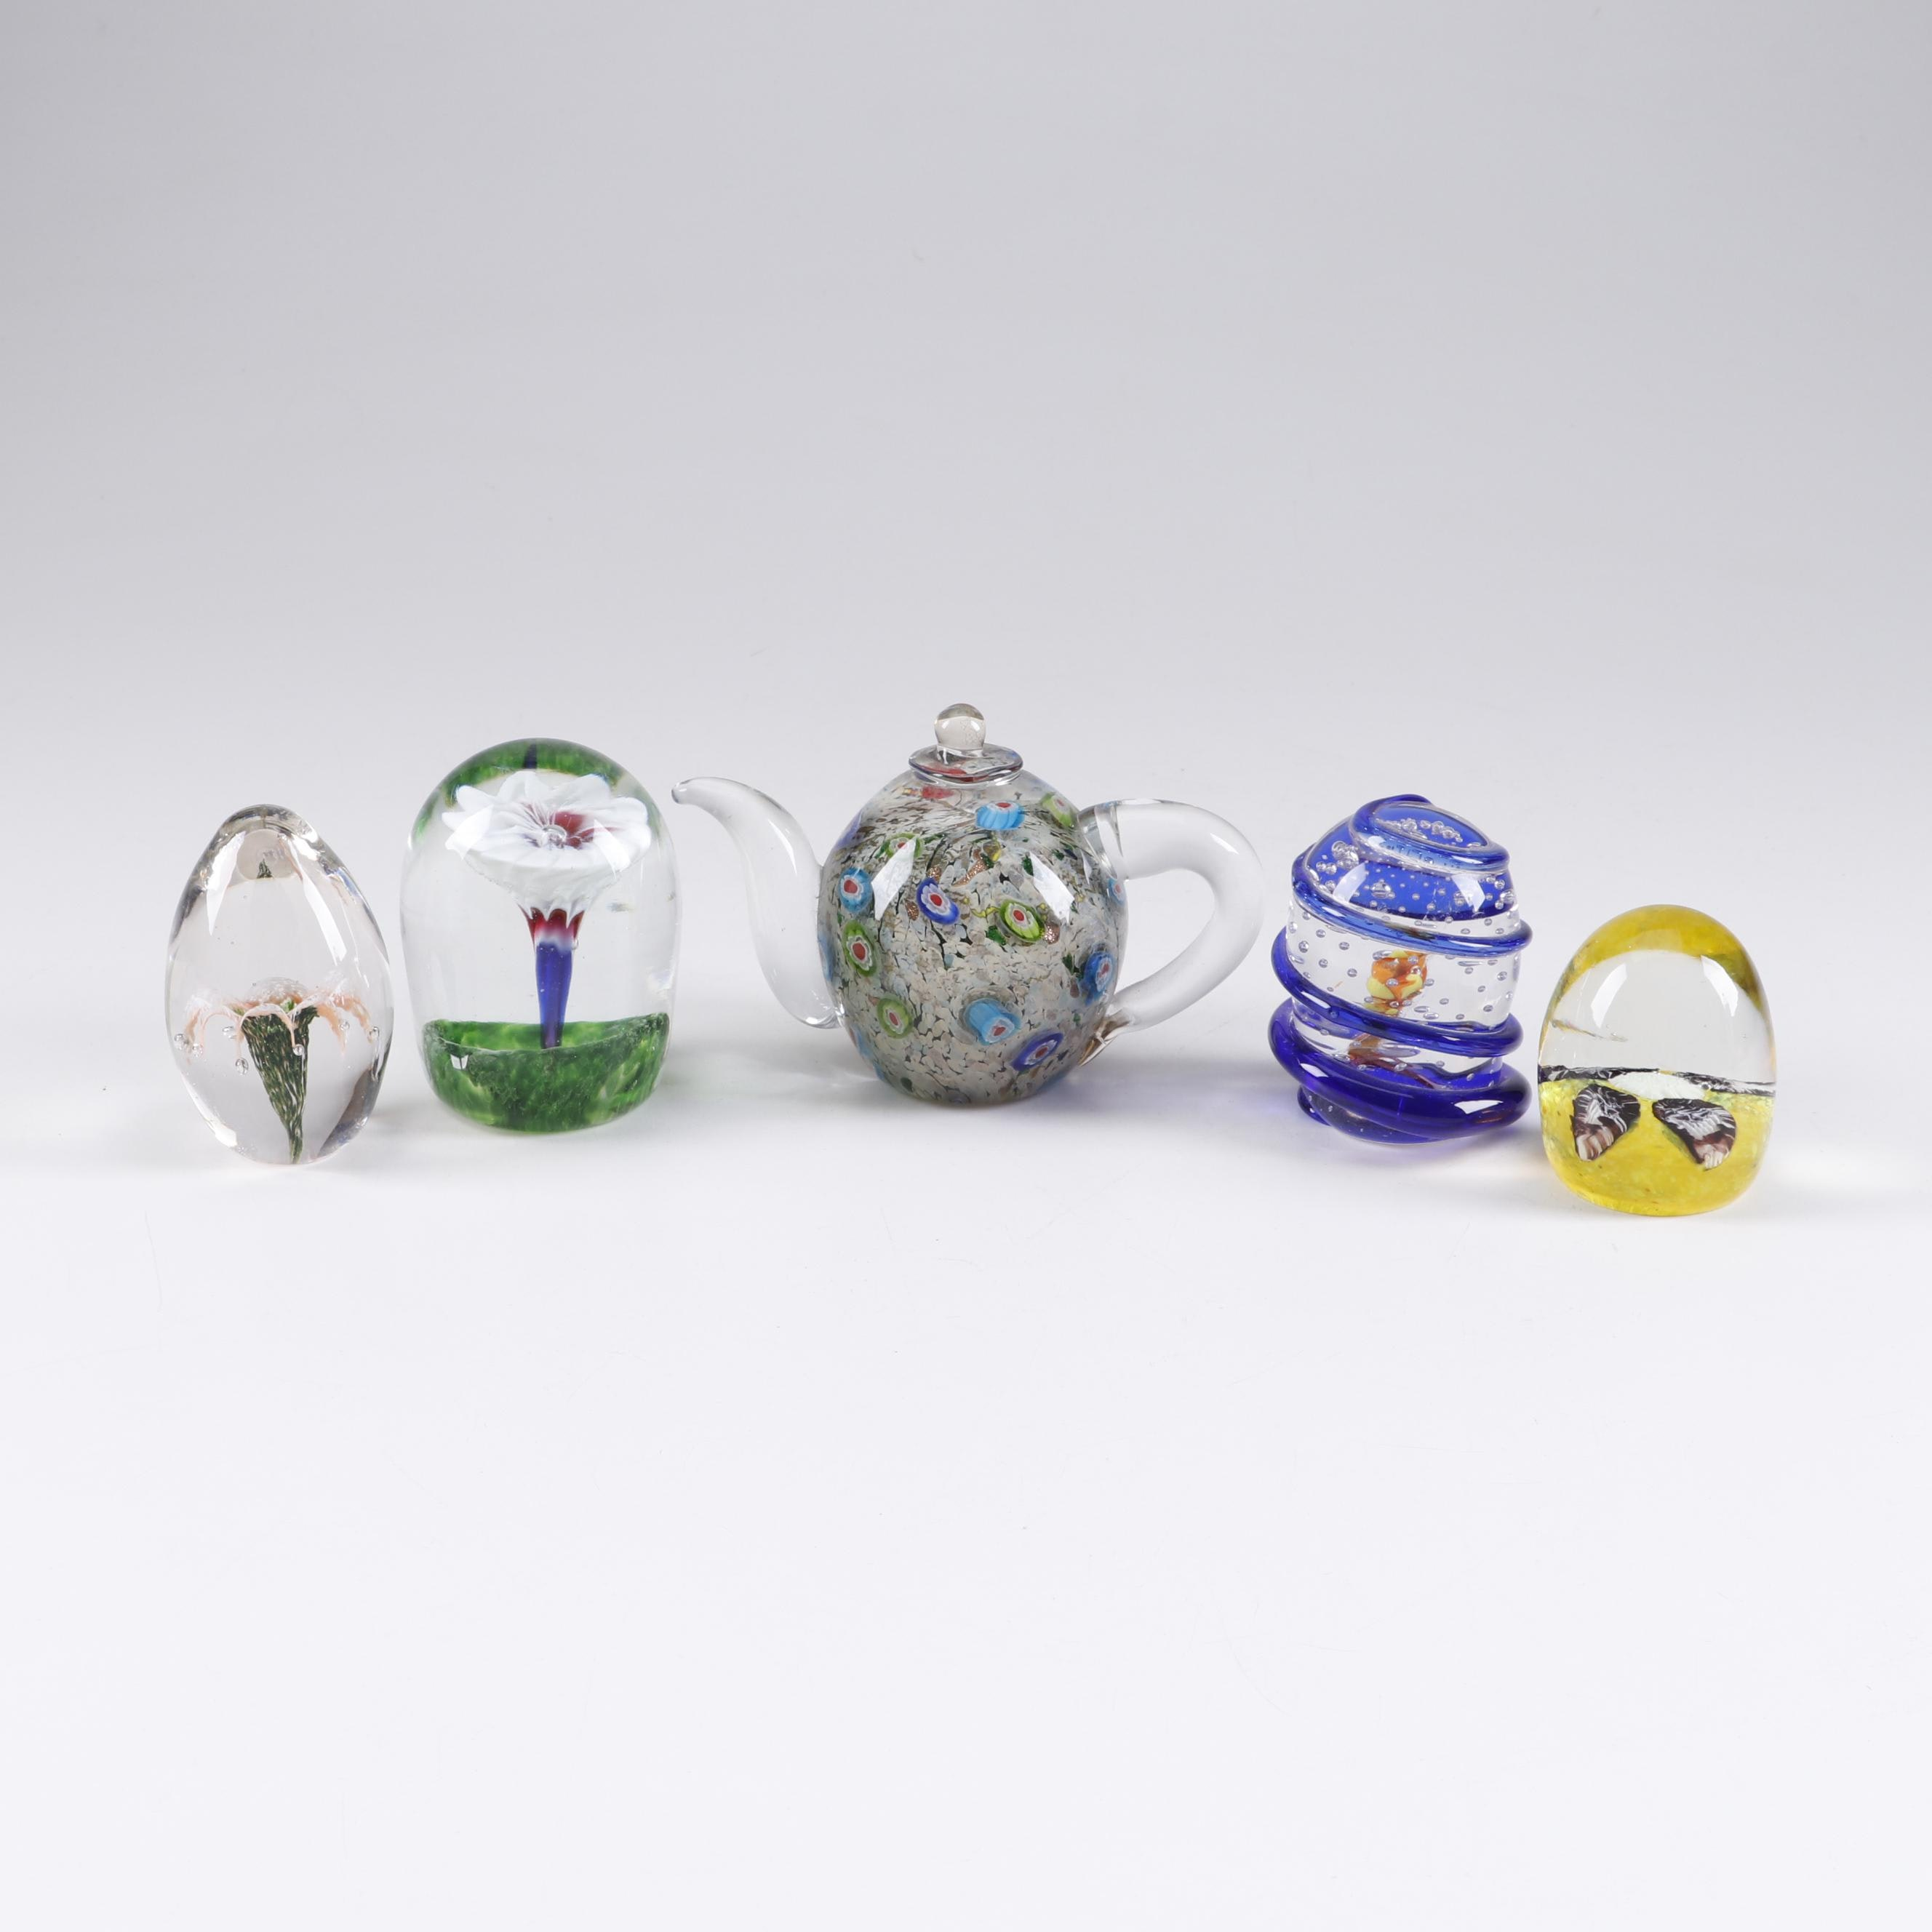 Art Glass Paperweights Featuring Murano, Dale Tiffany, and Titan